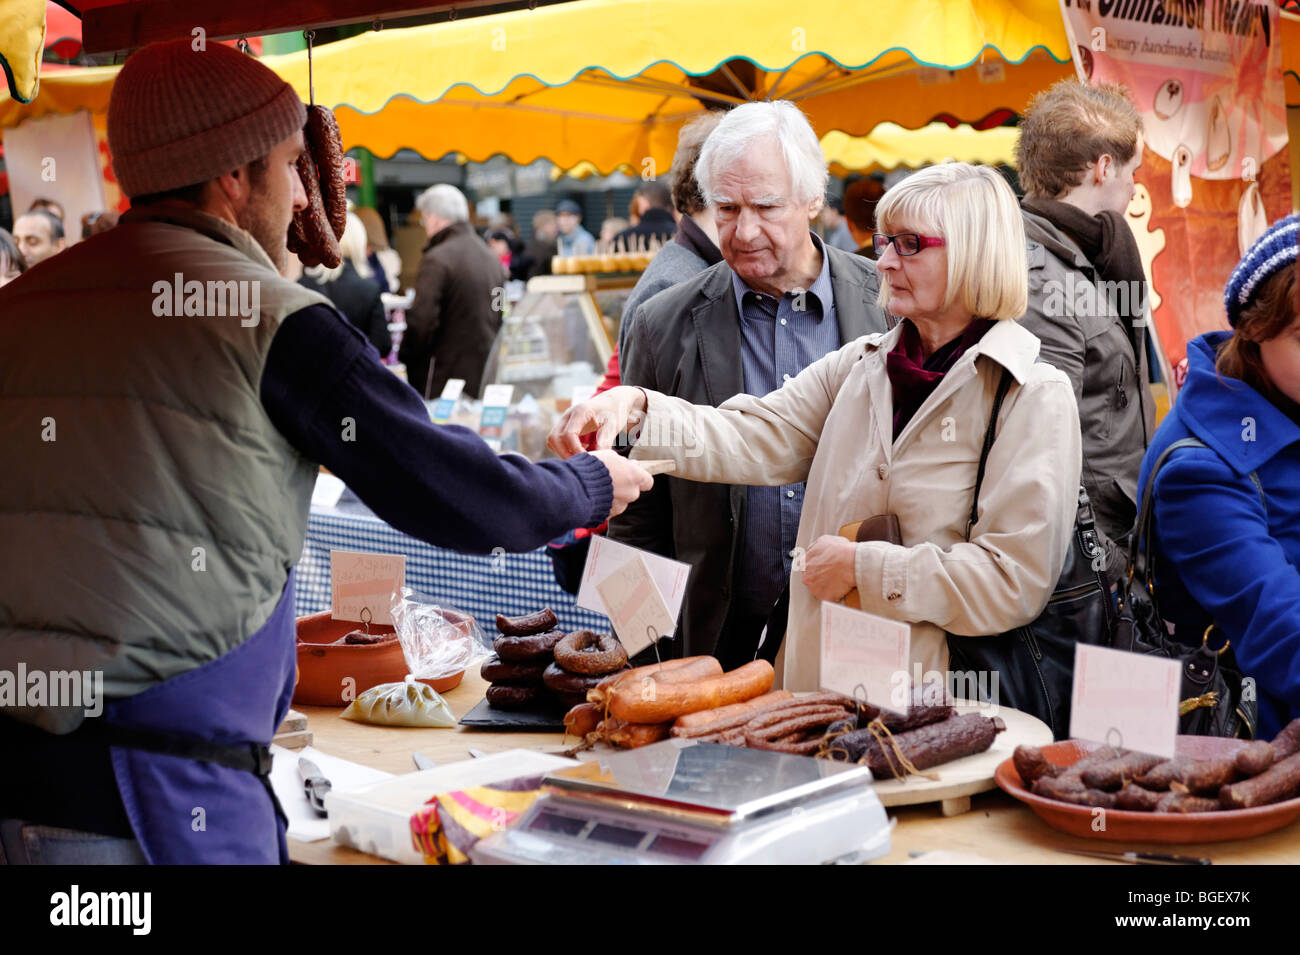 Middle class customers shopping at a Polish sausage stall. Borough Market. London. UK - Stock Image